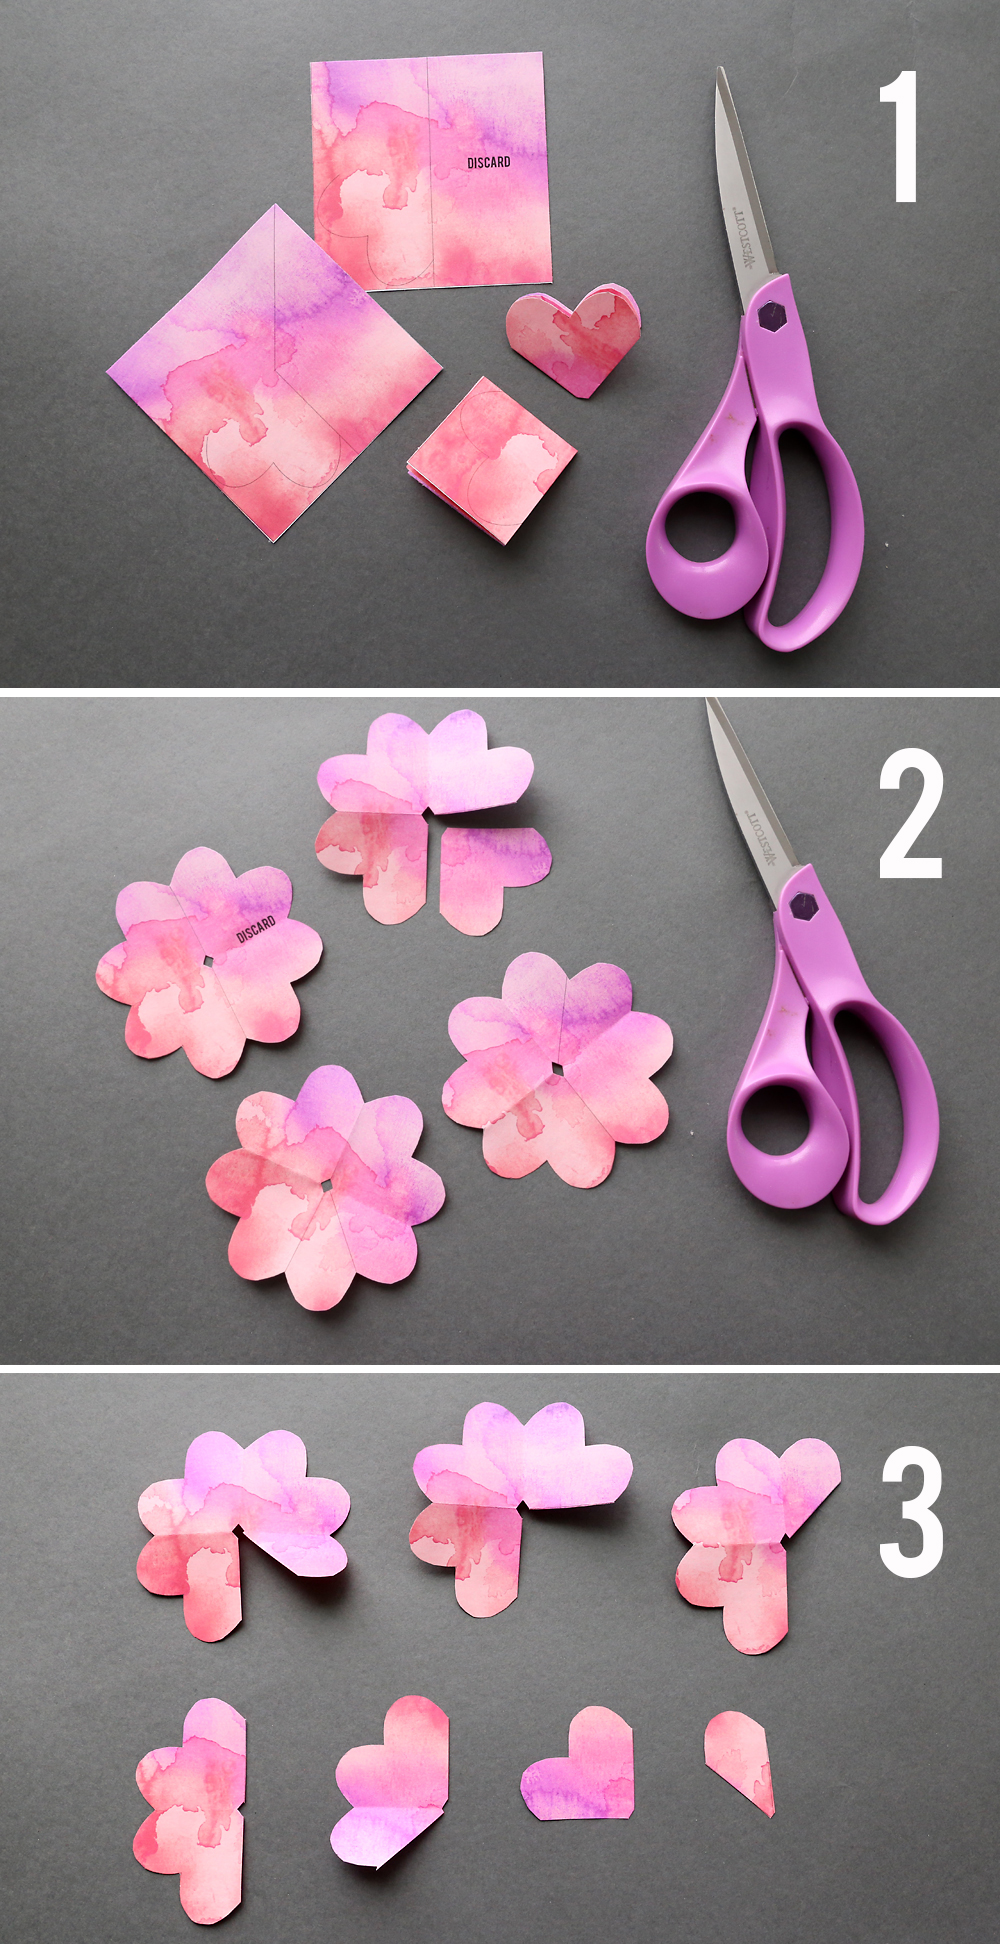 Learn how to make paper roses with these beautiful paper rose template. Step by step instructions included. How to make DIY paper flowers.